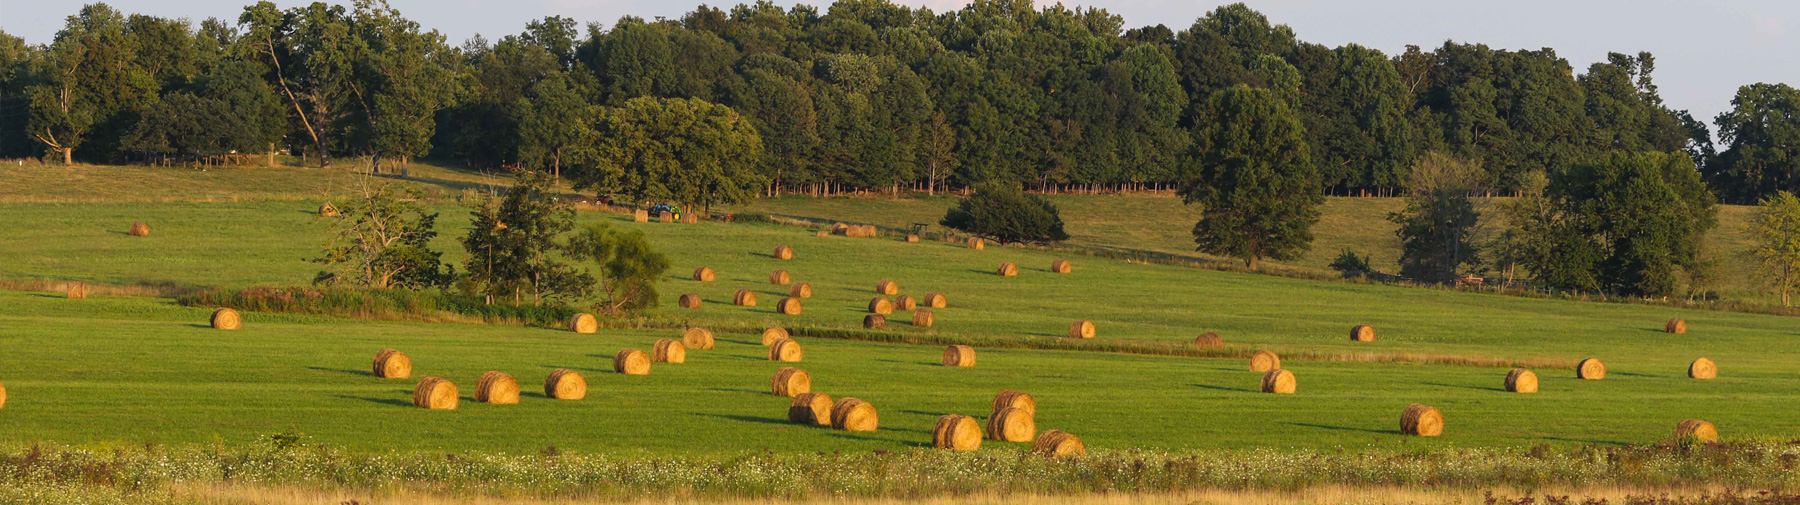 field dotted with bales of hay